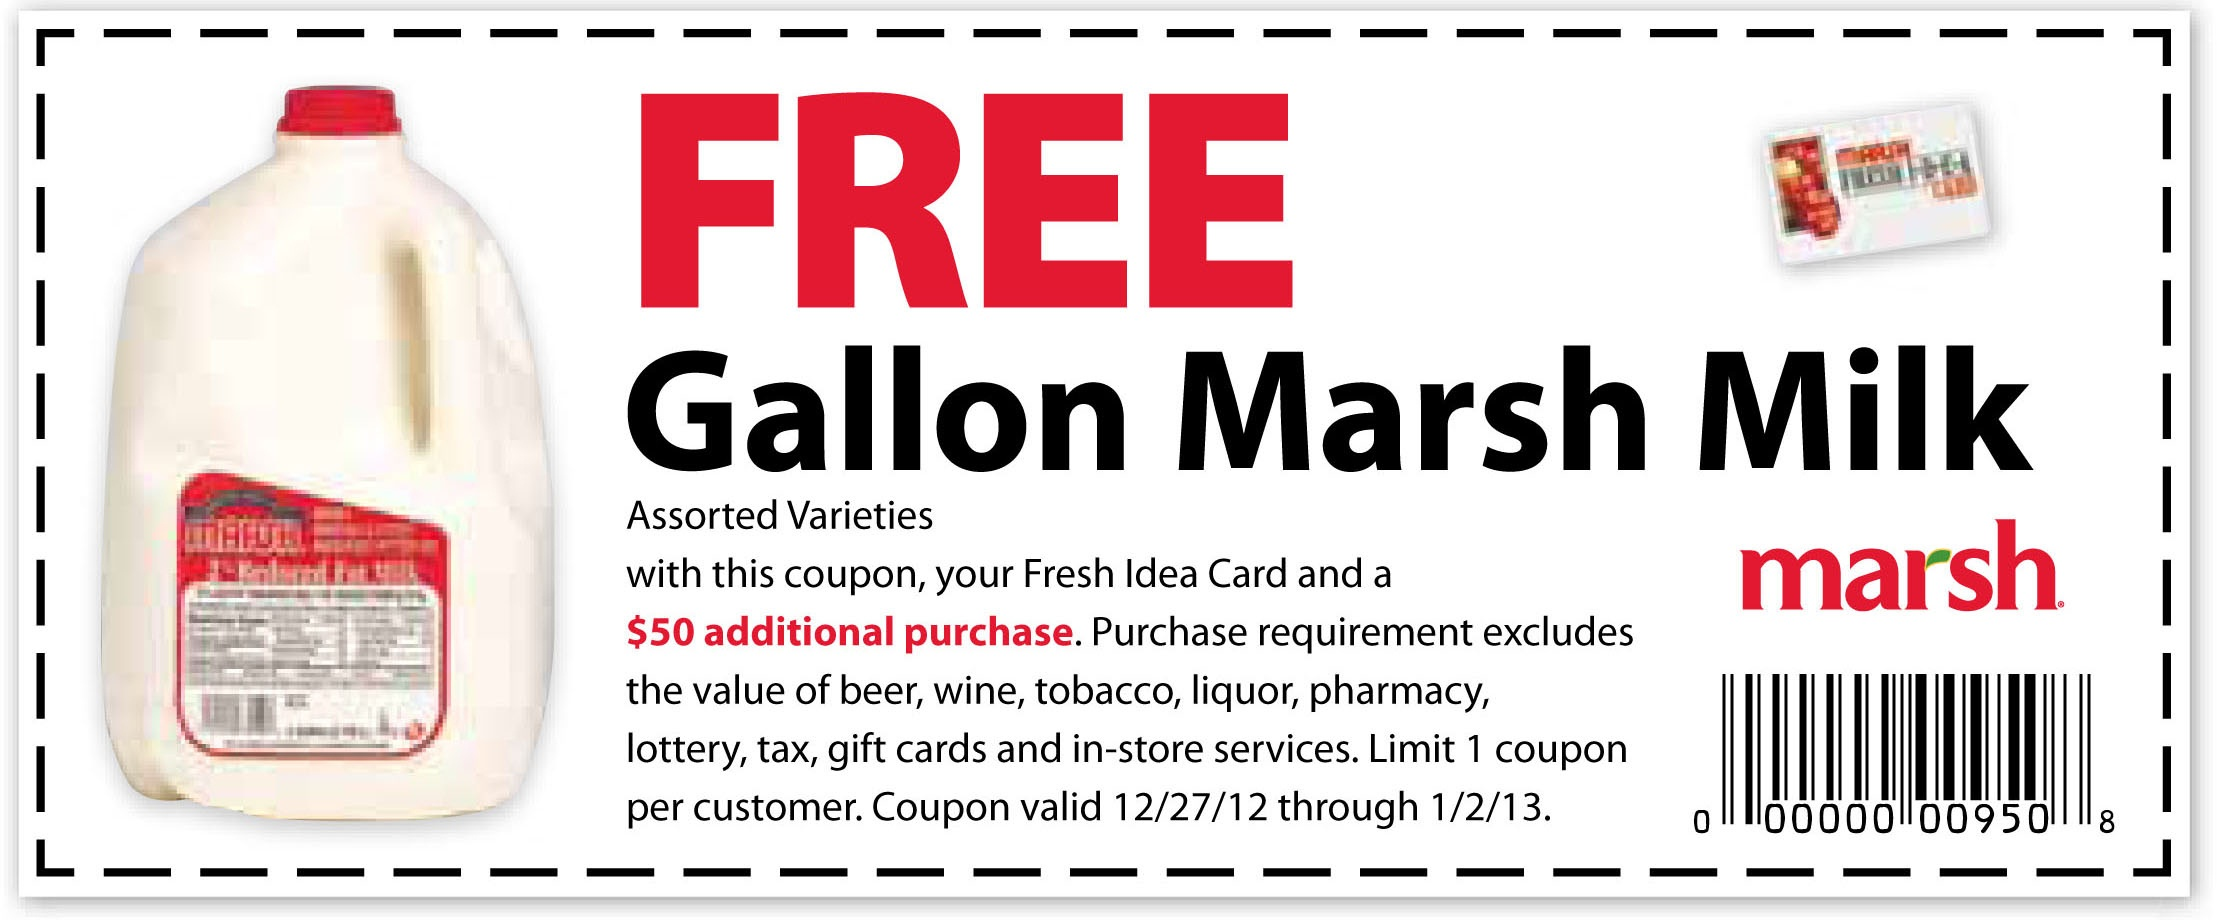 Stopnshop-Free-Silkmilk-Coupon-Valid-Ongoing-2018 - Free Printable Grocery Coupons